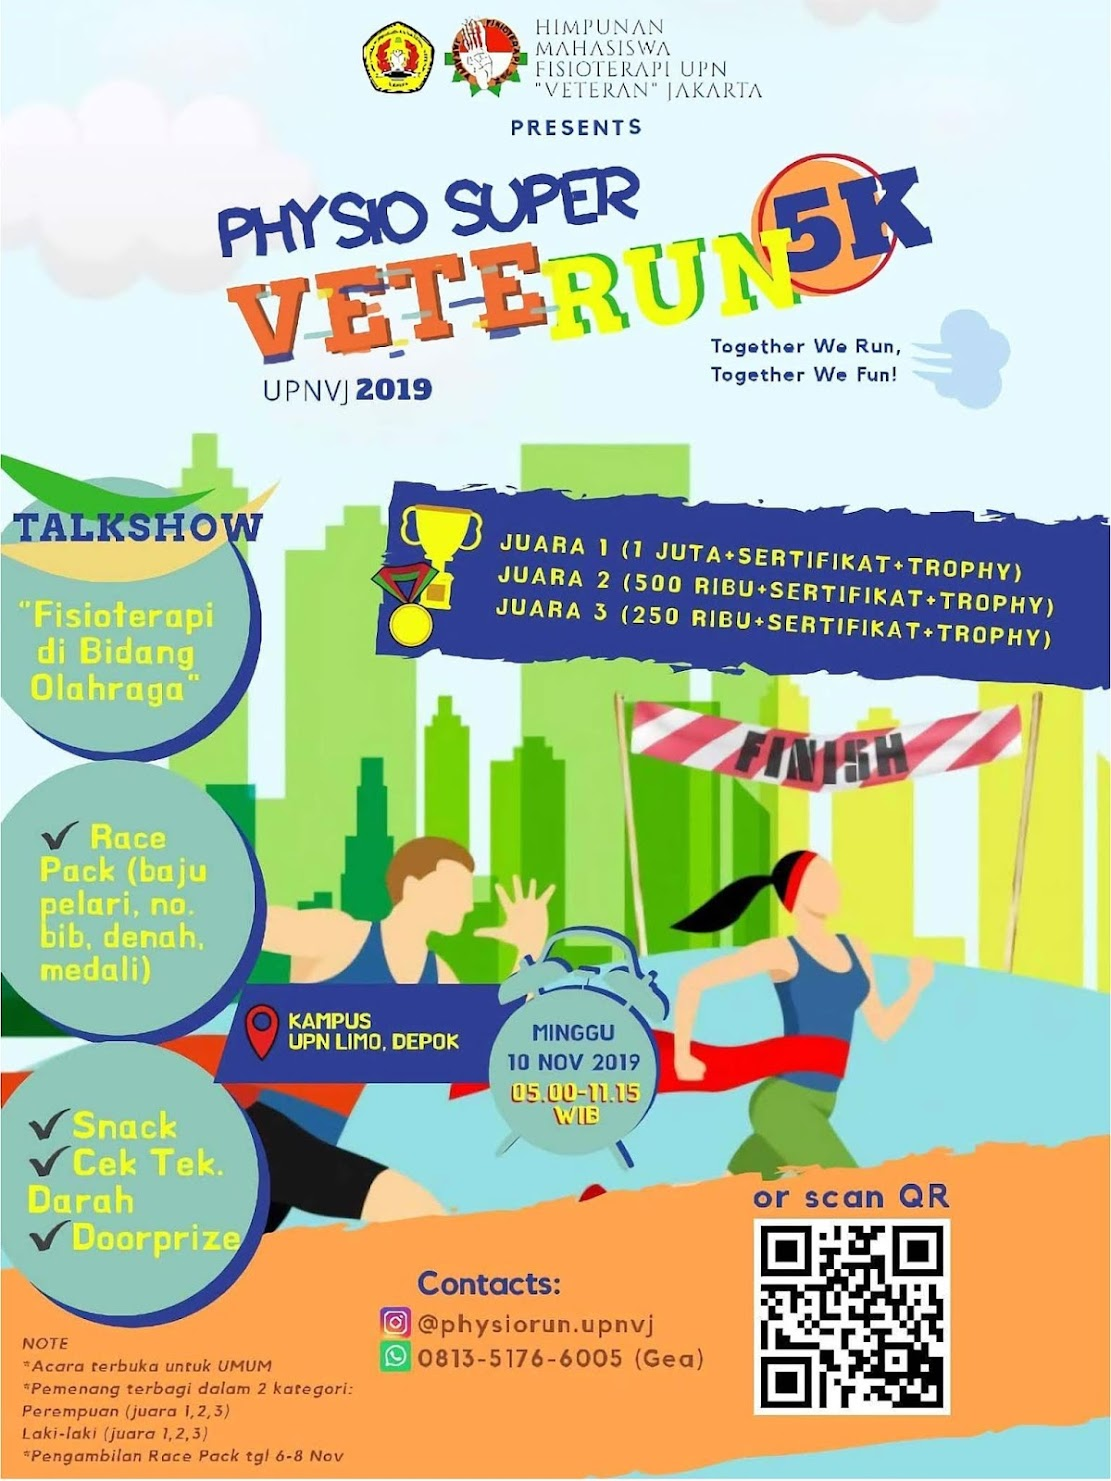 Physio Super VeteRun UPNVJ • 2019